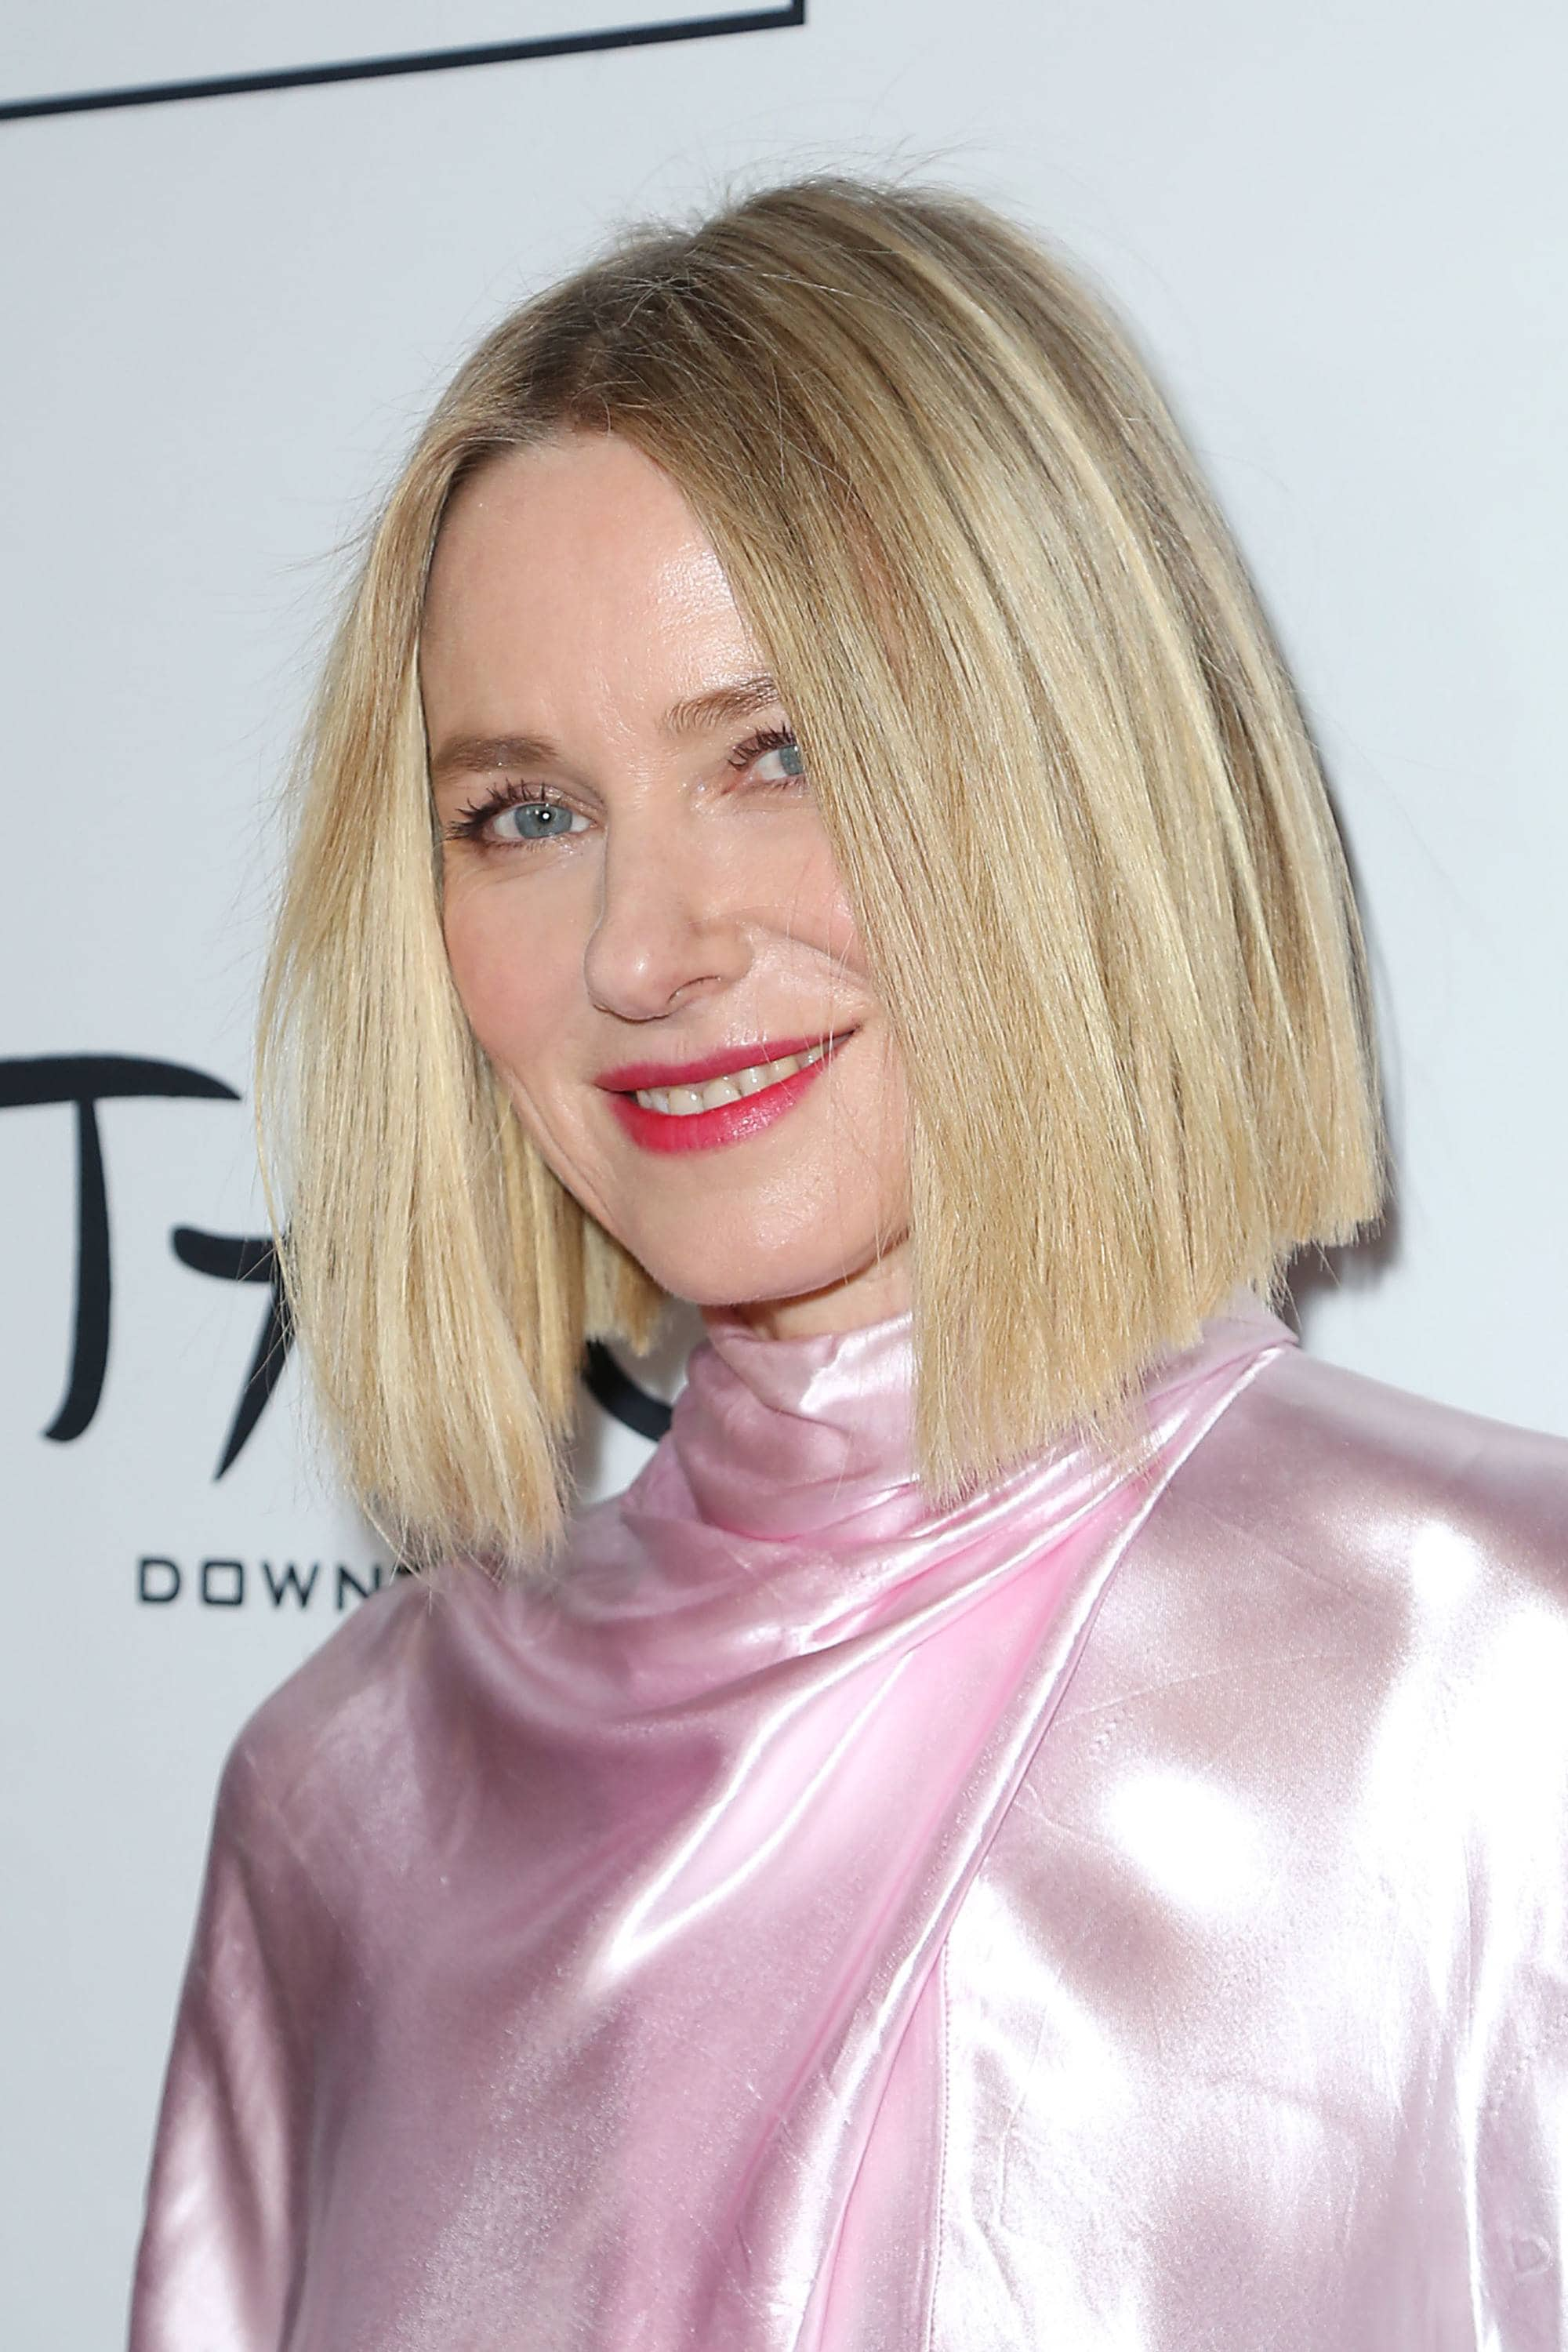 Angled bob: Naomi Watts with a blonde blunt angled bob, wearing a high neck silky pale pink dress